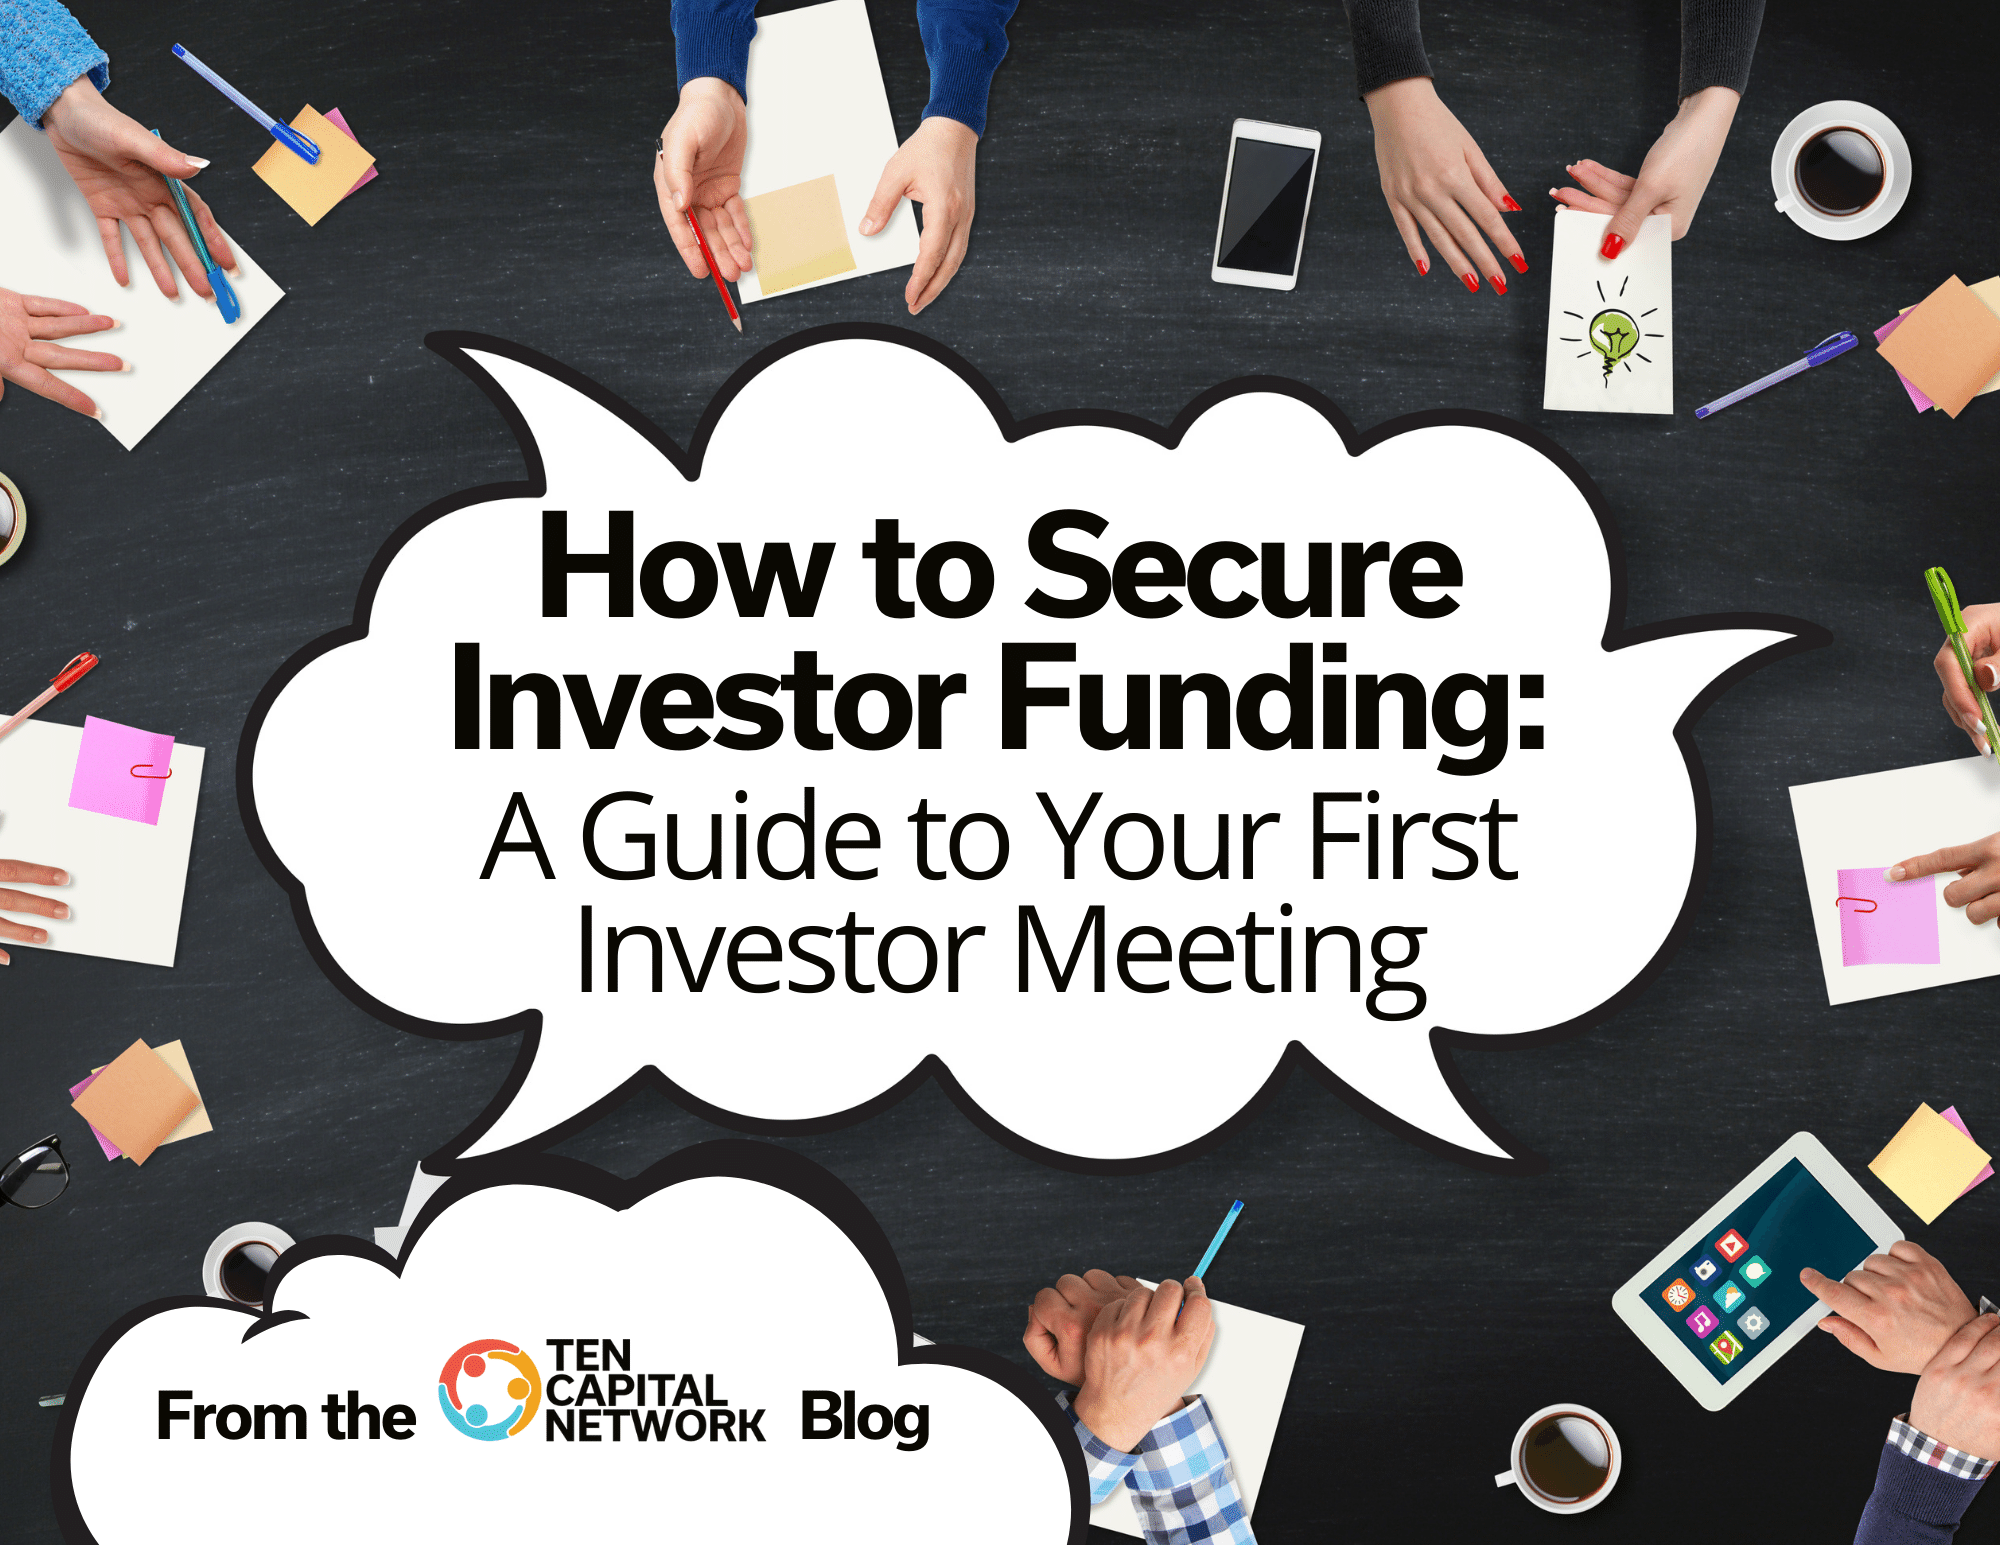 A Guide to Your First Investor Meeting